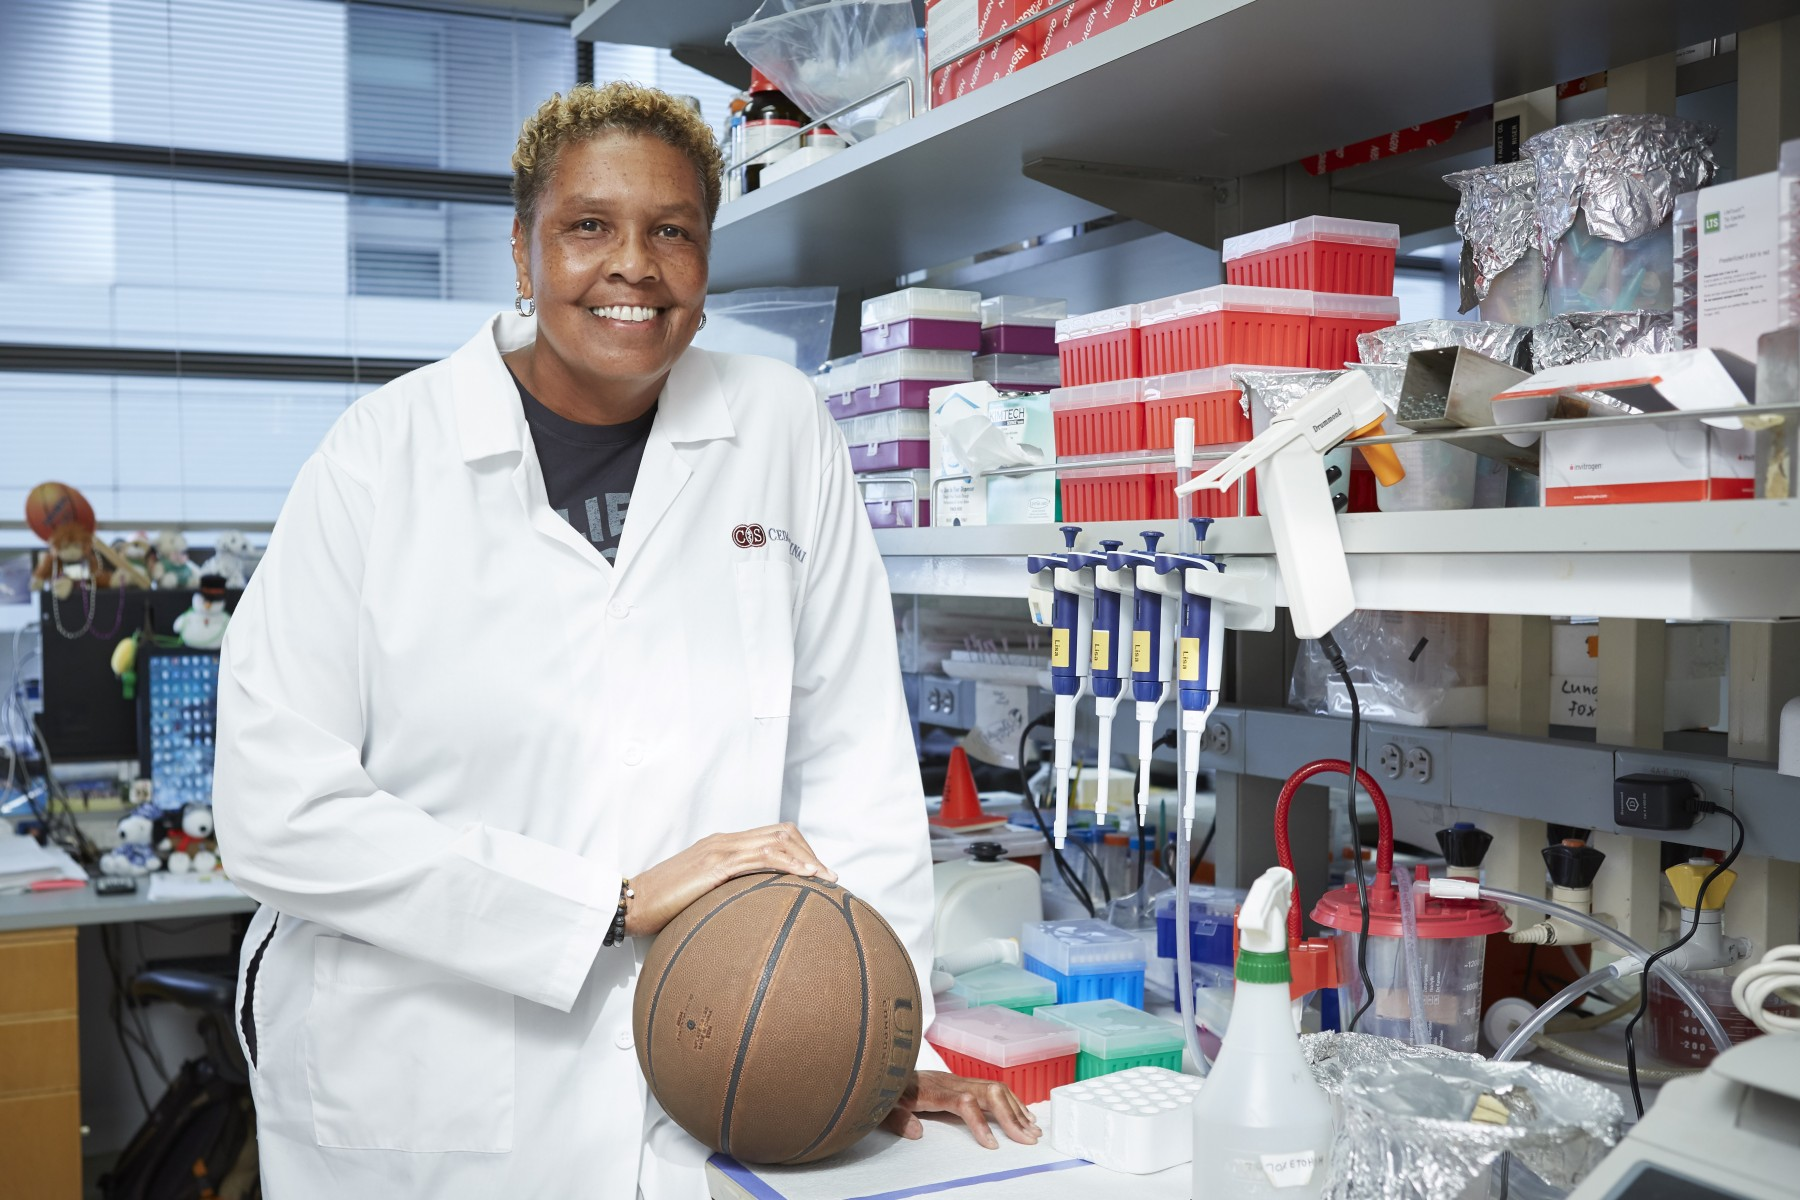 Lisa Thomas is a laboratory researcher of inflammatory bowel disorders and immunobiology. Photo by Cedars-Sinai.